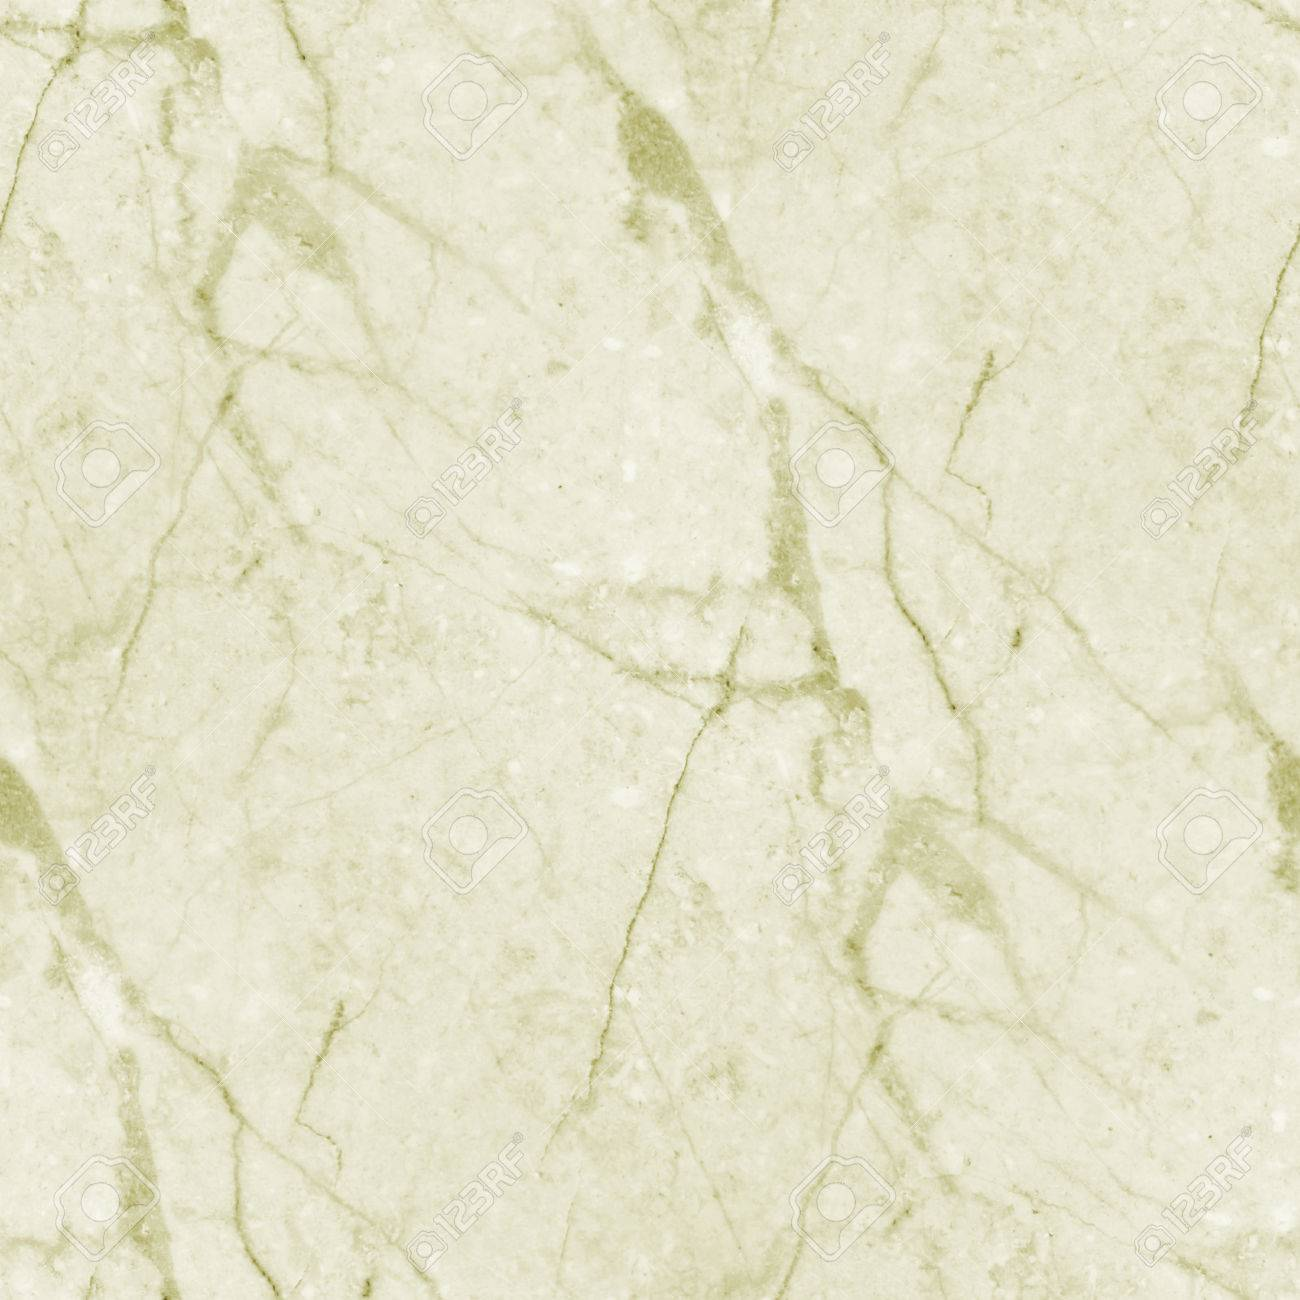 Abstract White Marble Texture Seamless Tile Stock Photo Picture And Royalty Free Image Image 68280908